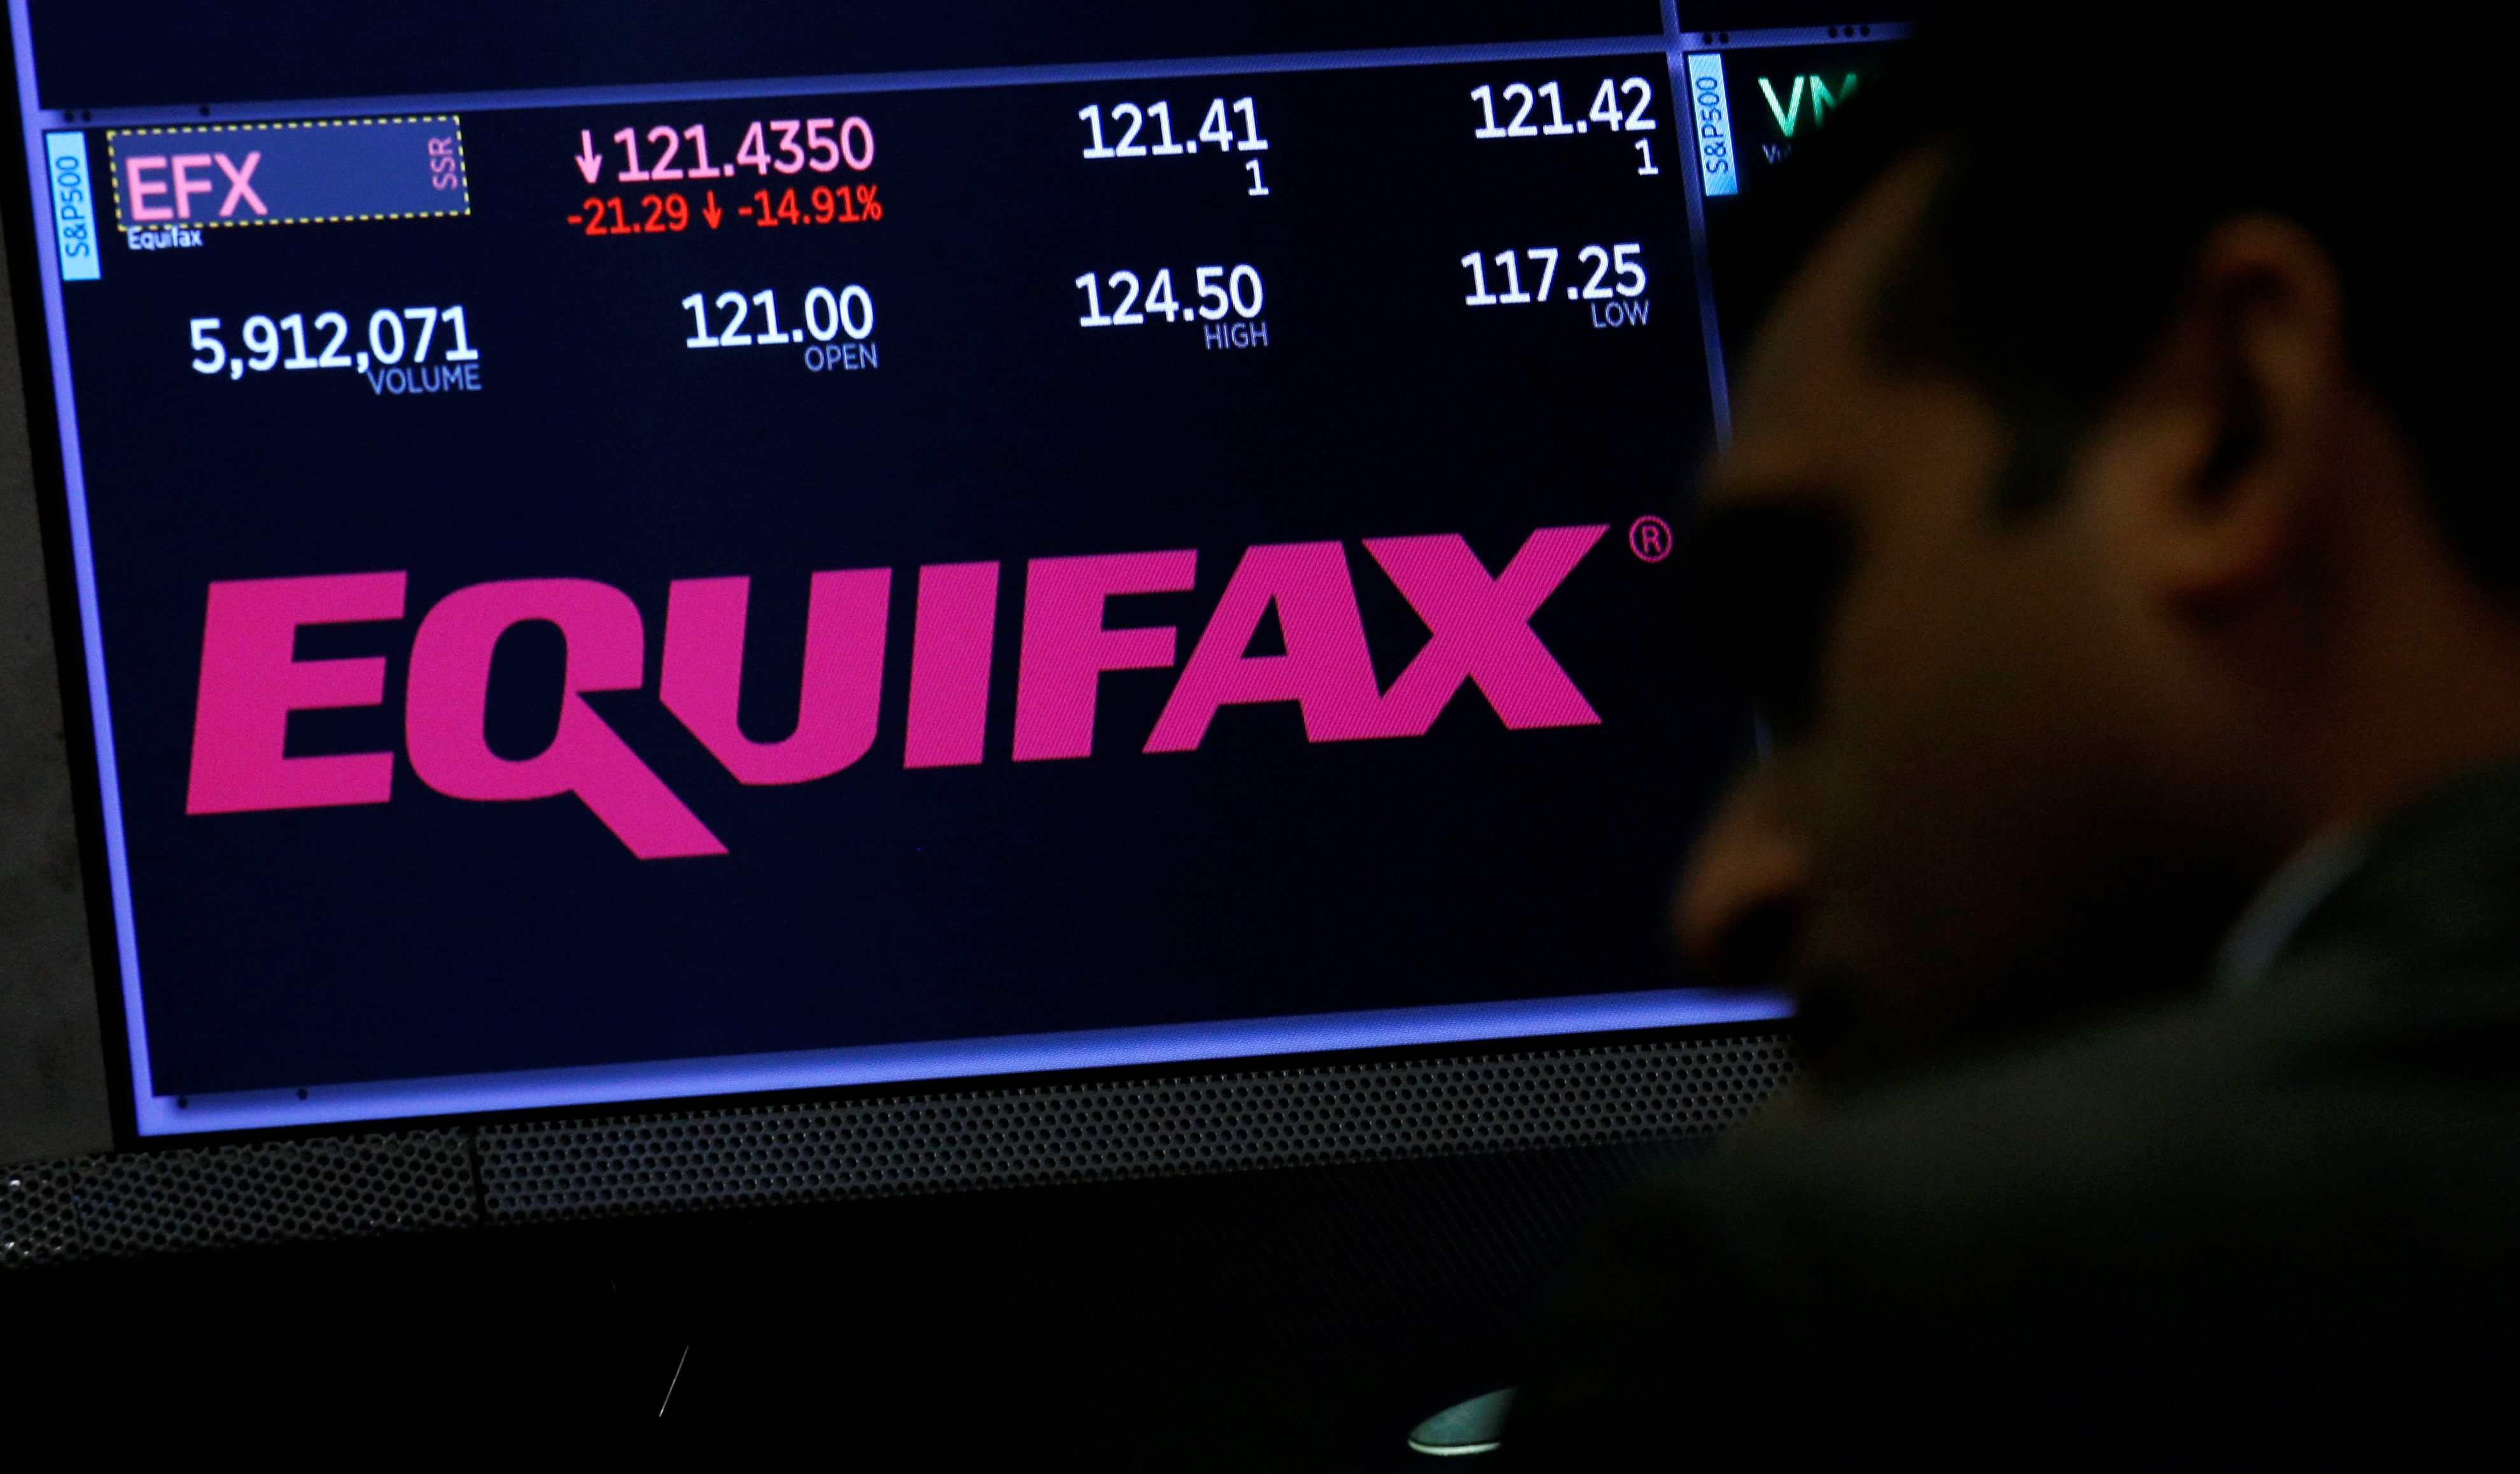 Trading information and the company logo are displayed on a screen where the stock is traded on the floor of the New York Stock Exchange (NYSE) in New York, U.S., September 8, 2017.